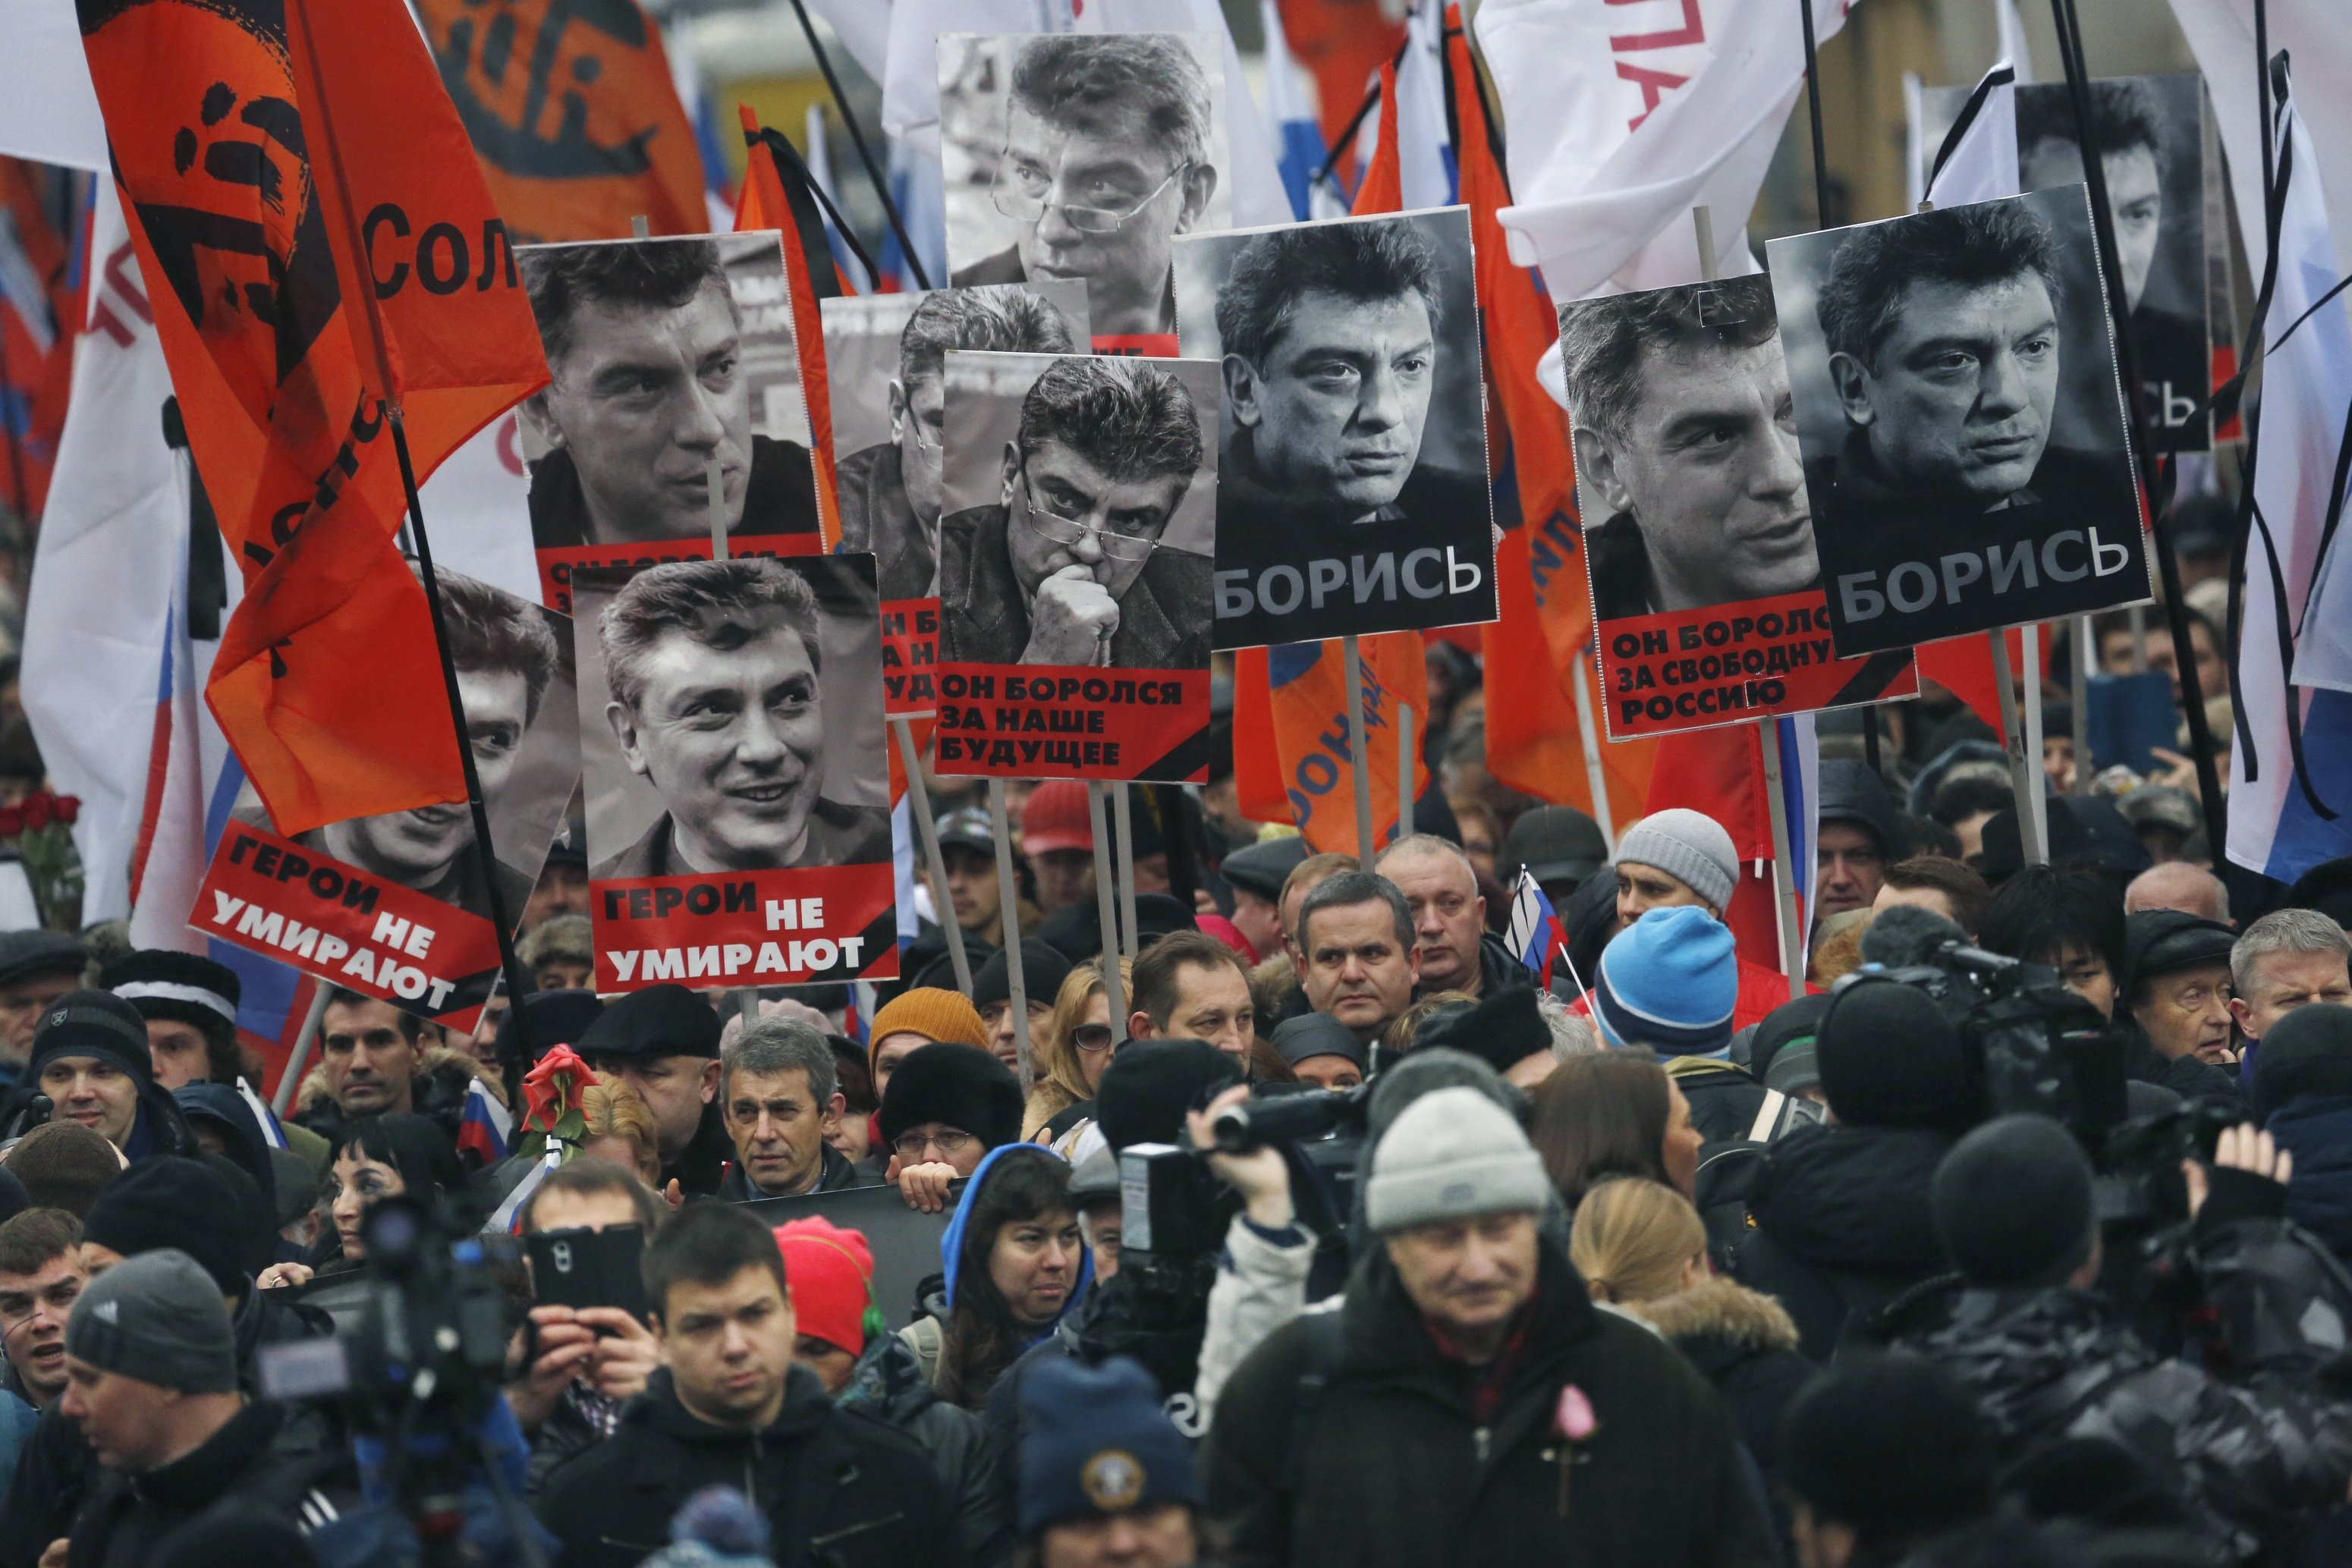 People march in memory of opposition leader Boris Nemtsov near the Kremlin in Moscow on March 1, 2015.